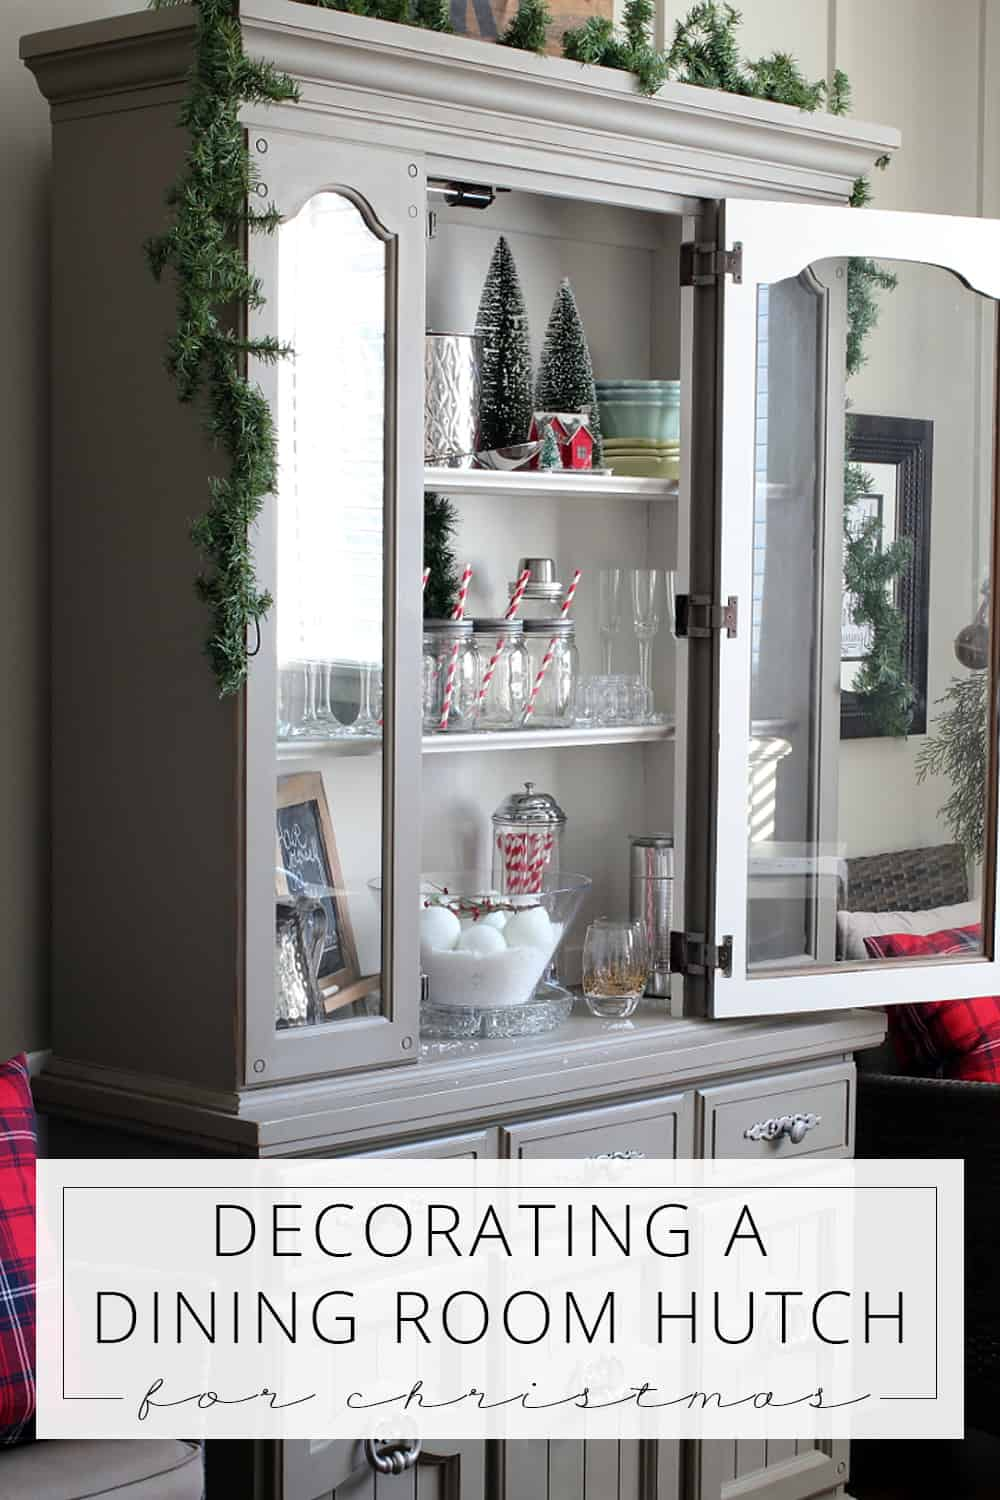 tips for decorating a dining room hutch for christmas